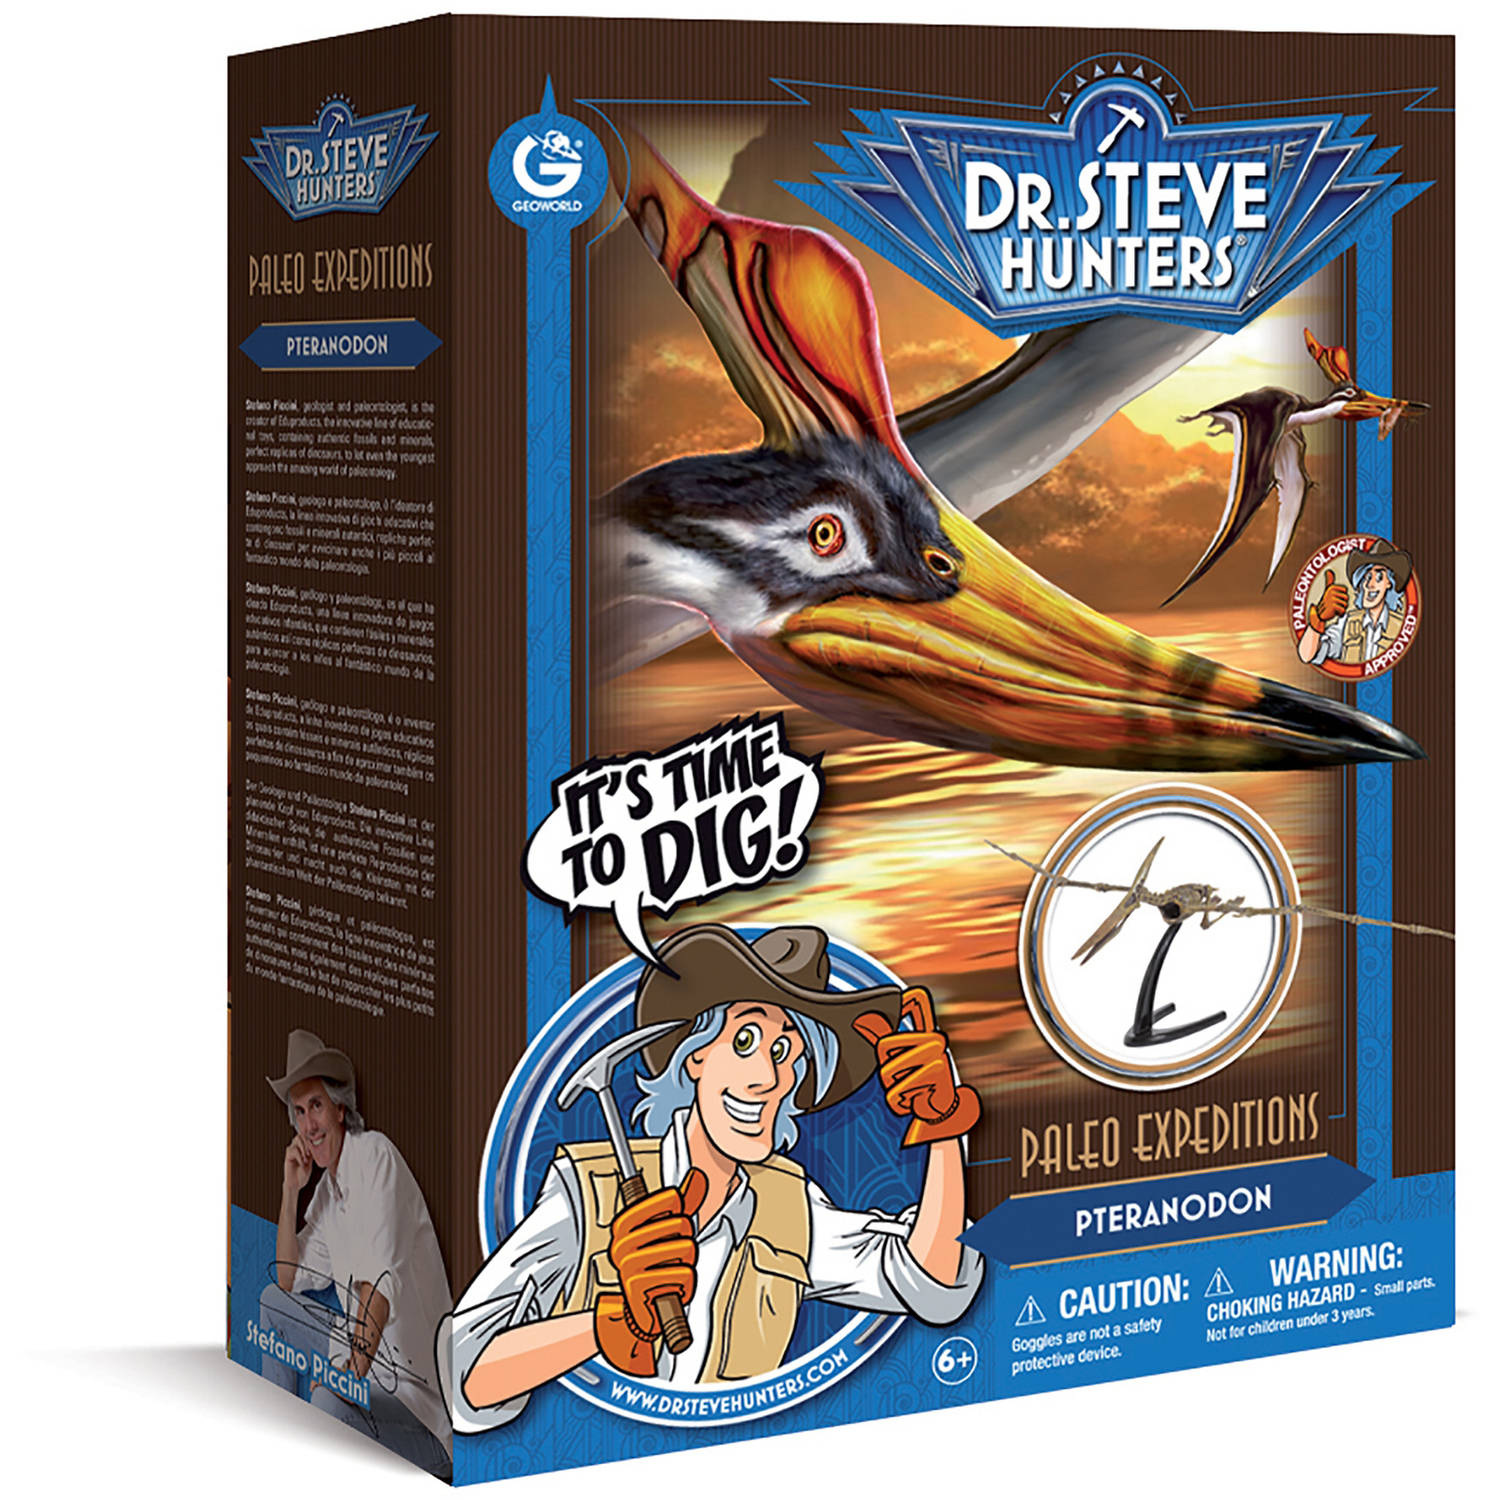 Geoworld Dr. Steve Hunters Paleo Expeditions Dino Excavation Kit, Pteranodon